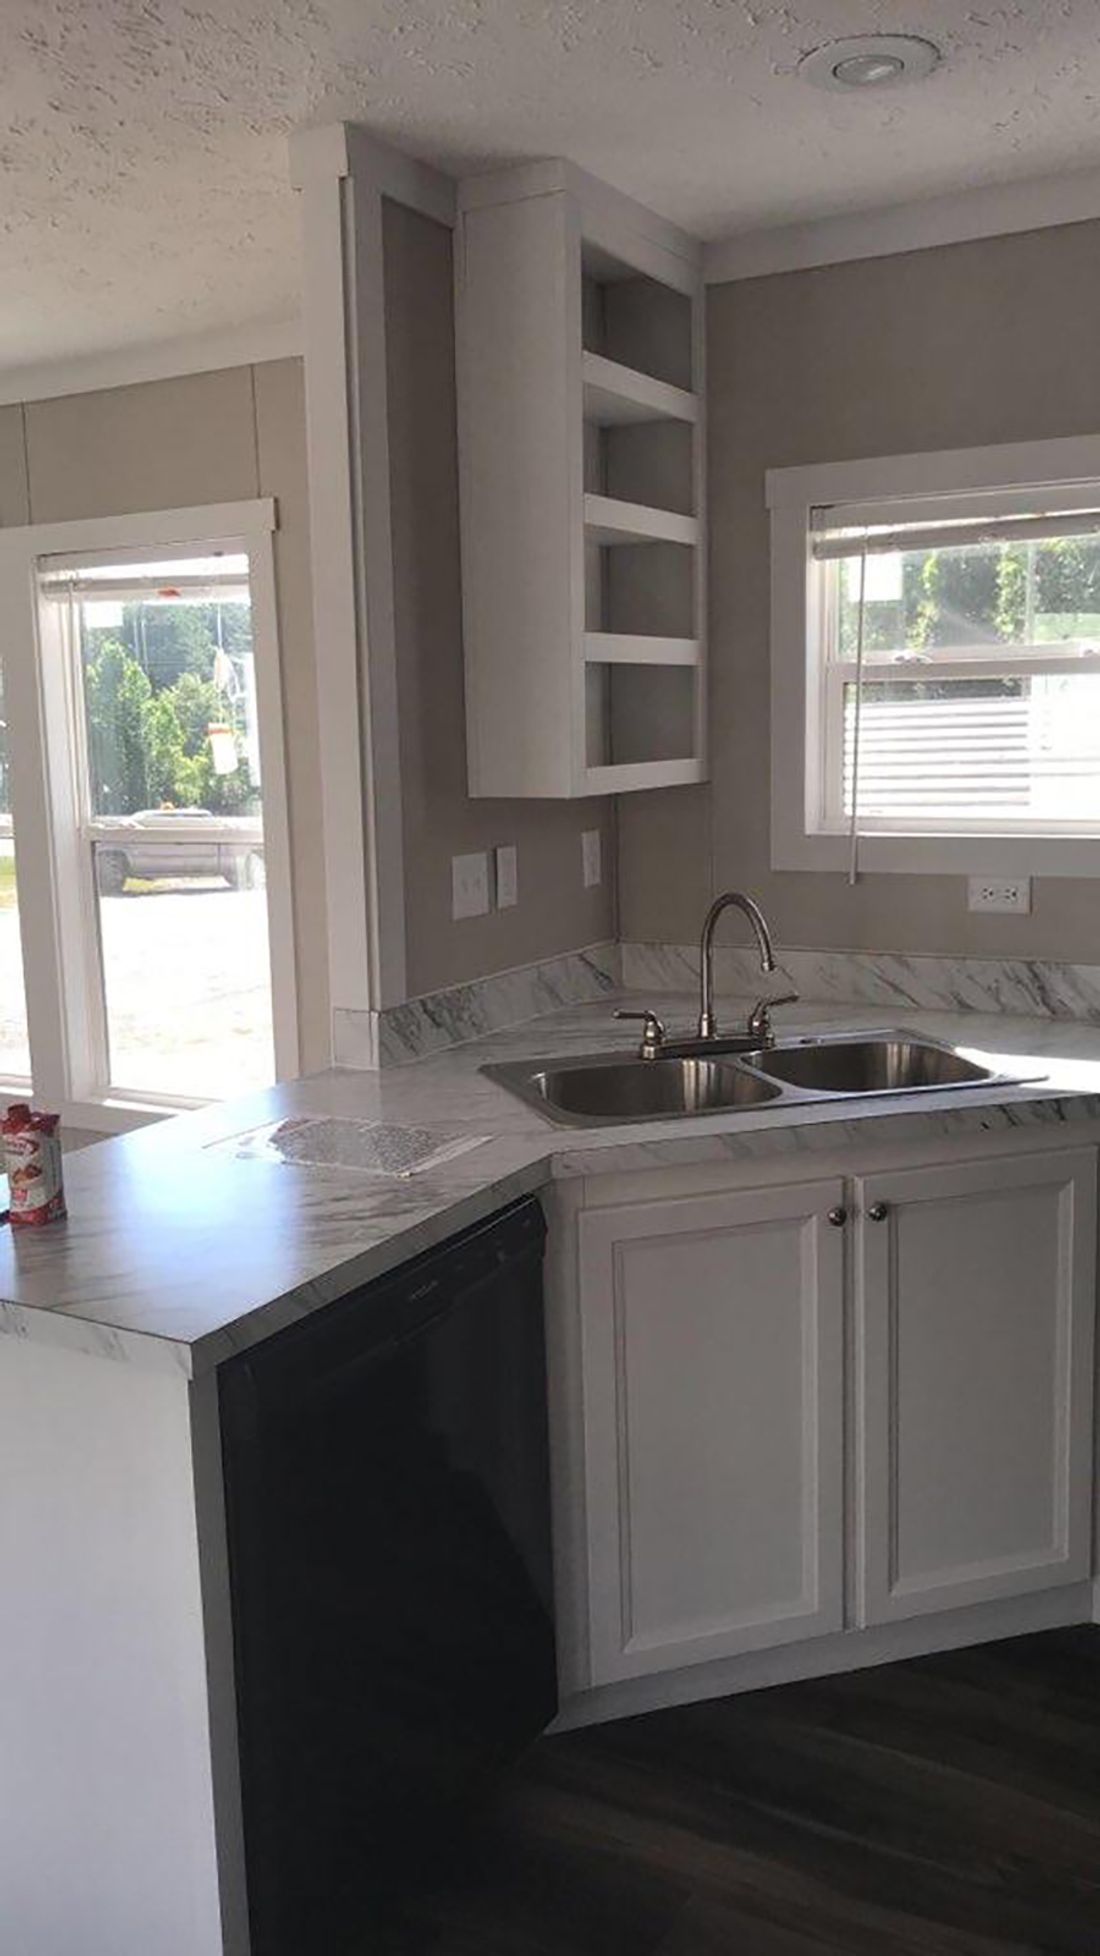 The THE MURPHY Kitchen. This Manufactured Mobile Home features 1 bedroom and 1 bath.